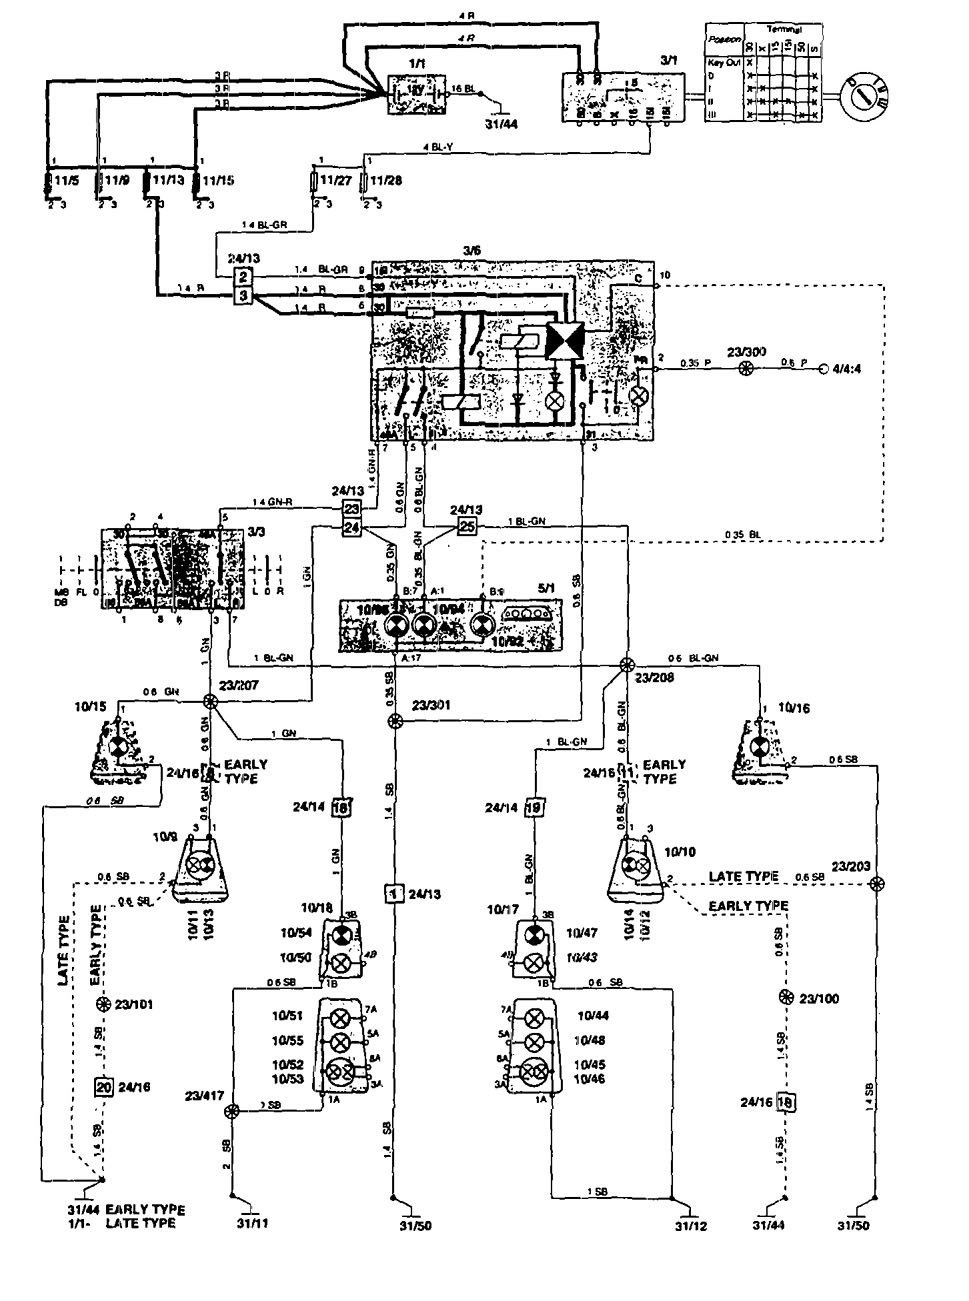 Volvo 850 1995 Wiring Diagrams Turn Signal Lamp Carknowledge 242 Gt Diagram